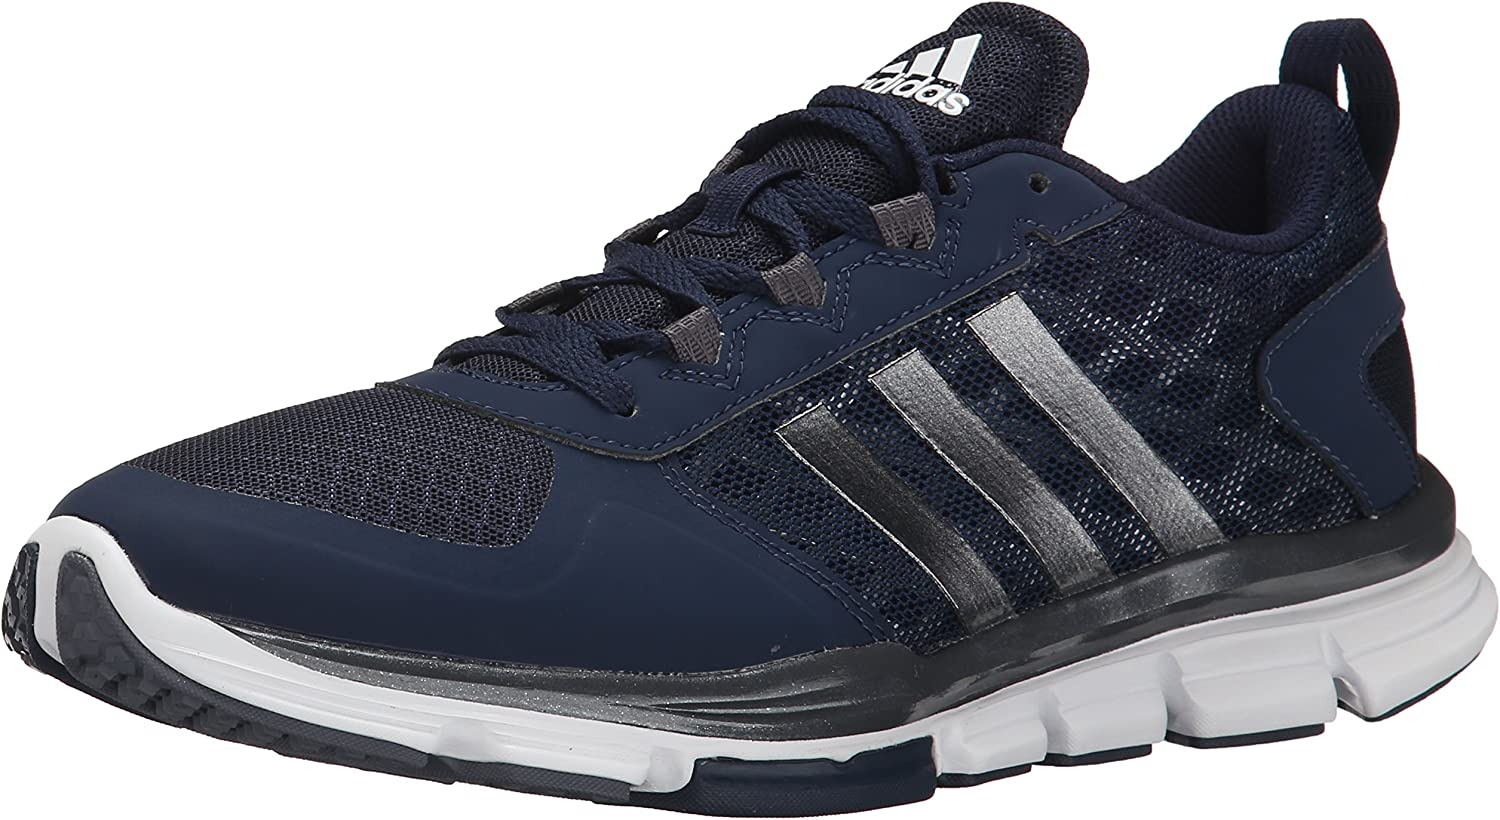 Adidas Performance Speed Trainer 2 Training shoes, Black carbon Metallic collegiate gold, 4 M Us